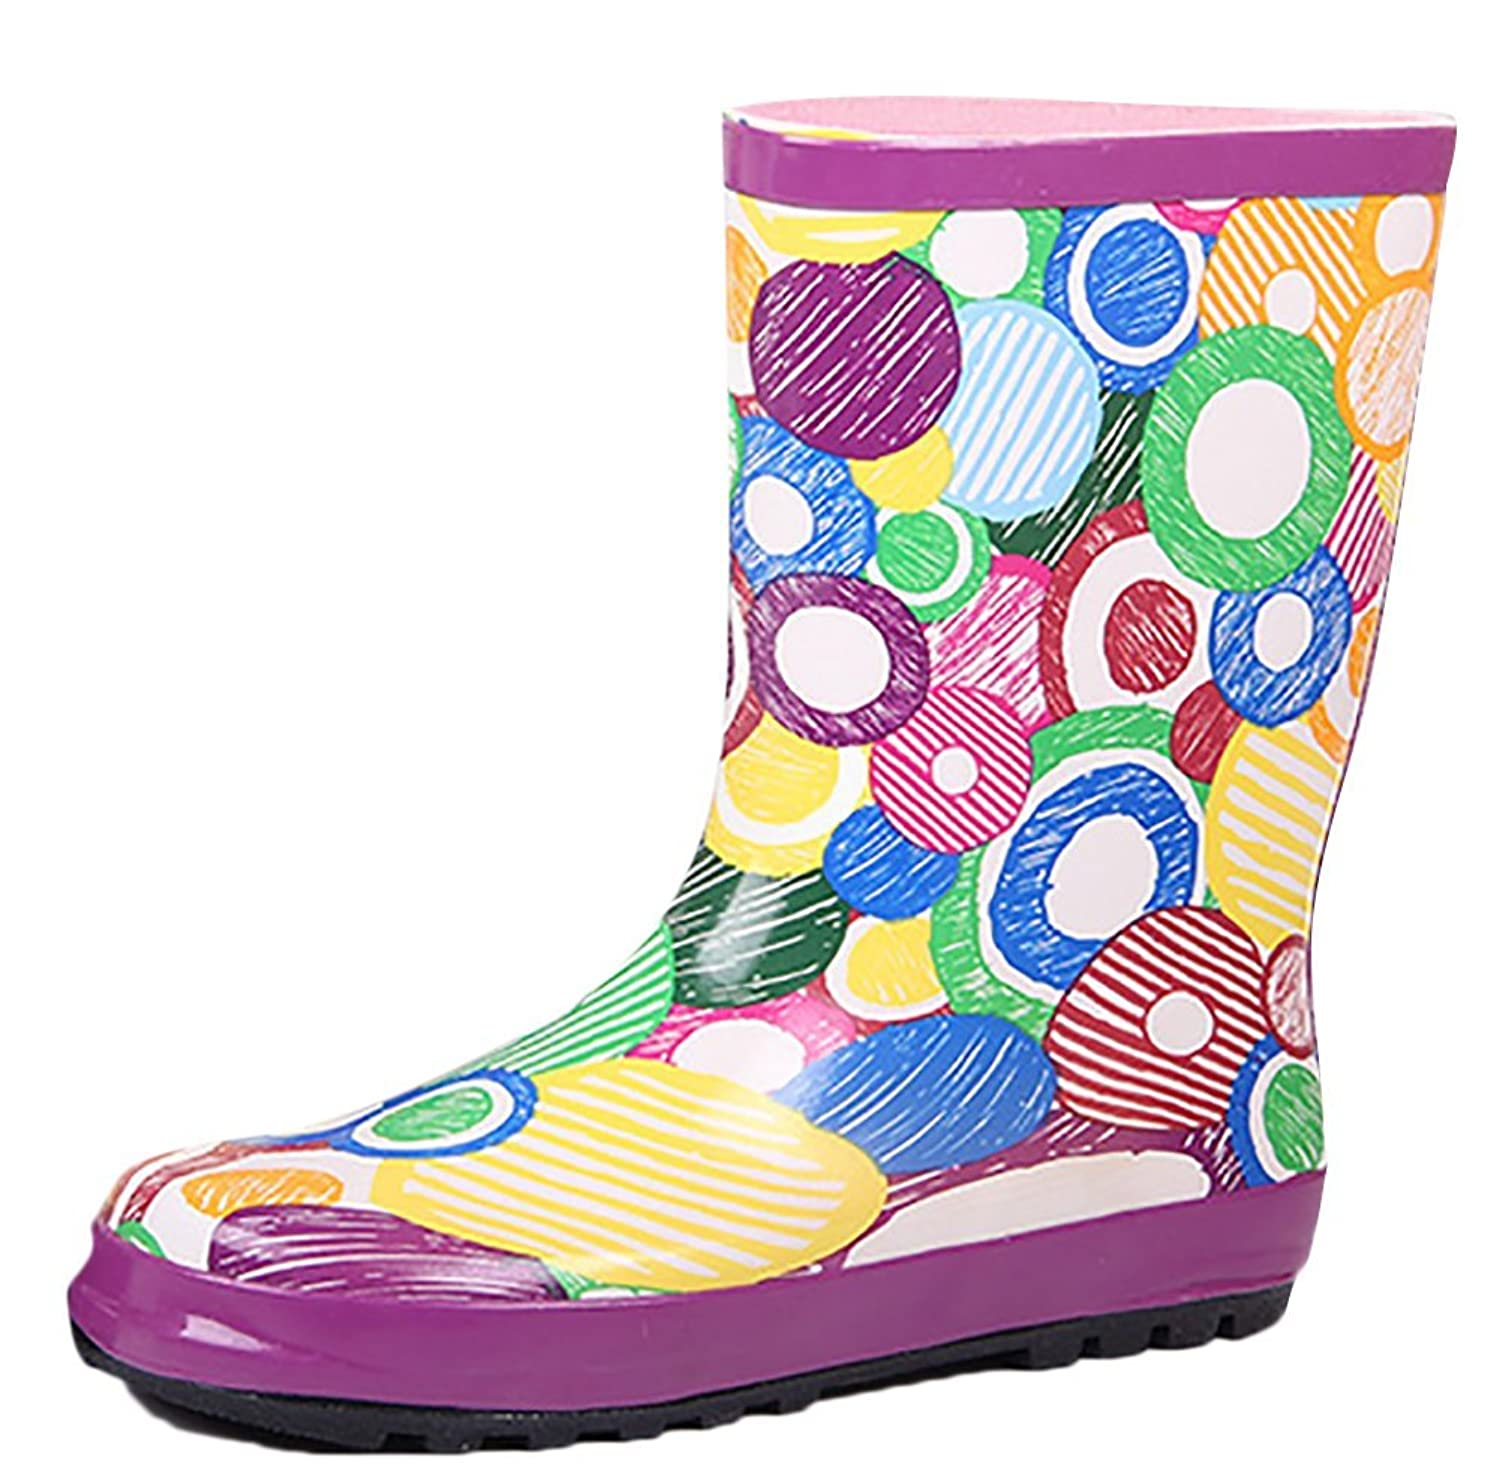 Womens Girls Fashion Wide Mid calf Waterproof Rain Boot Anti-Skidding